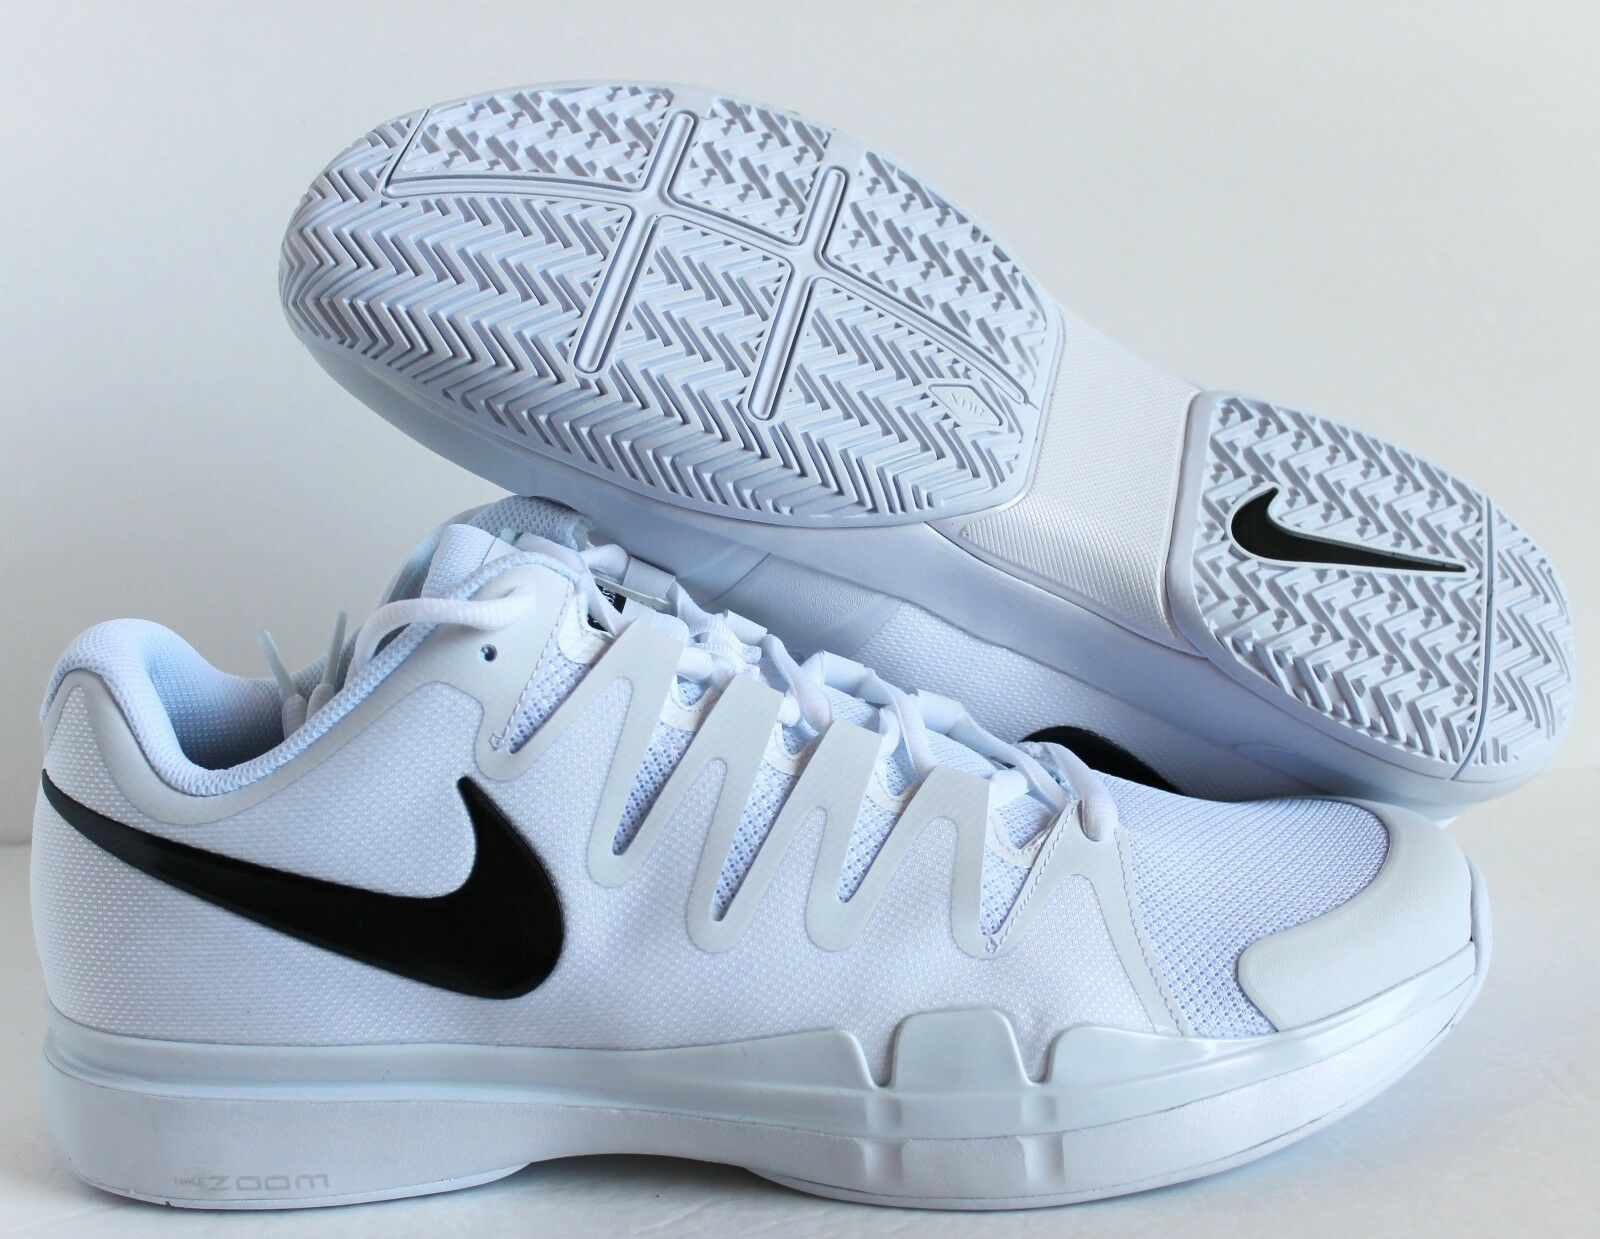 NIKE ZOOM VAPOR 9.5 TOUR QS TENNIS WHITE-BLACK Price reduction The most popular shoes for men and women